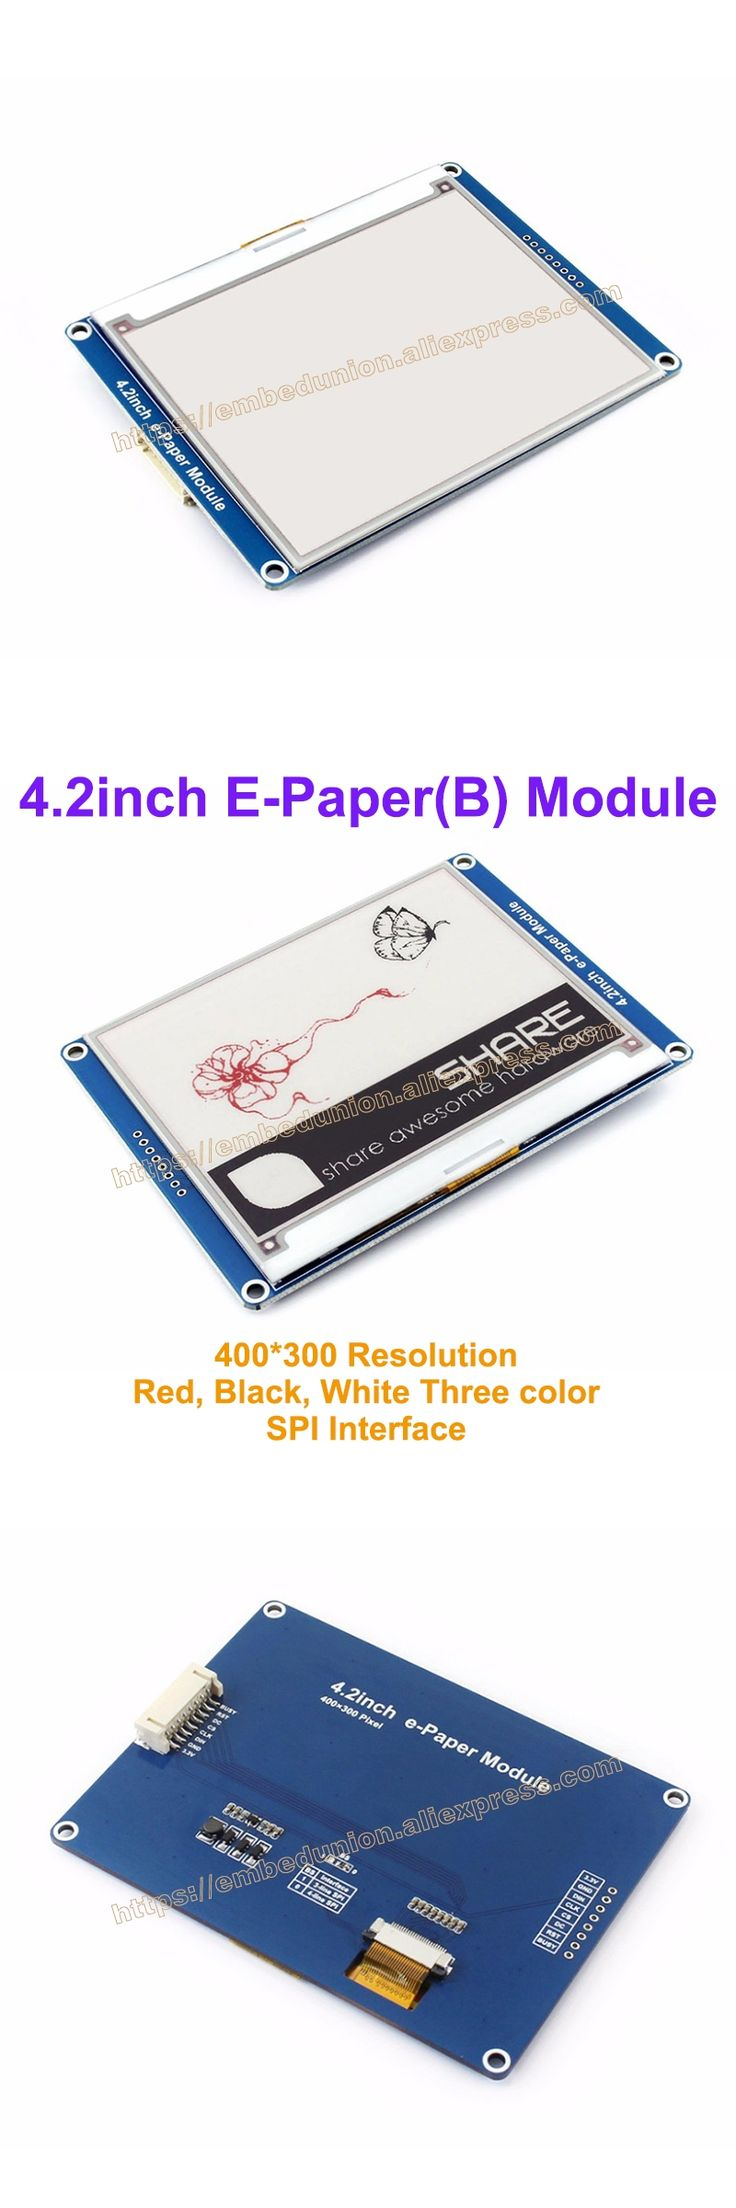 4.2inch e-paper(B) with base Board 400x300 Drive Demo board module display color:Red&black&white, No backlight, SPI interface